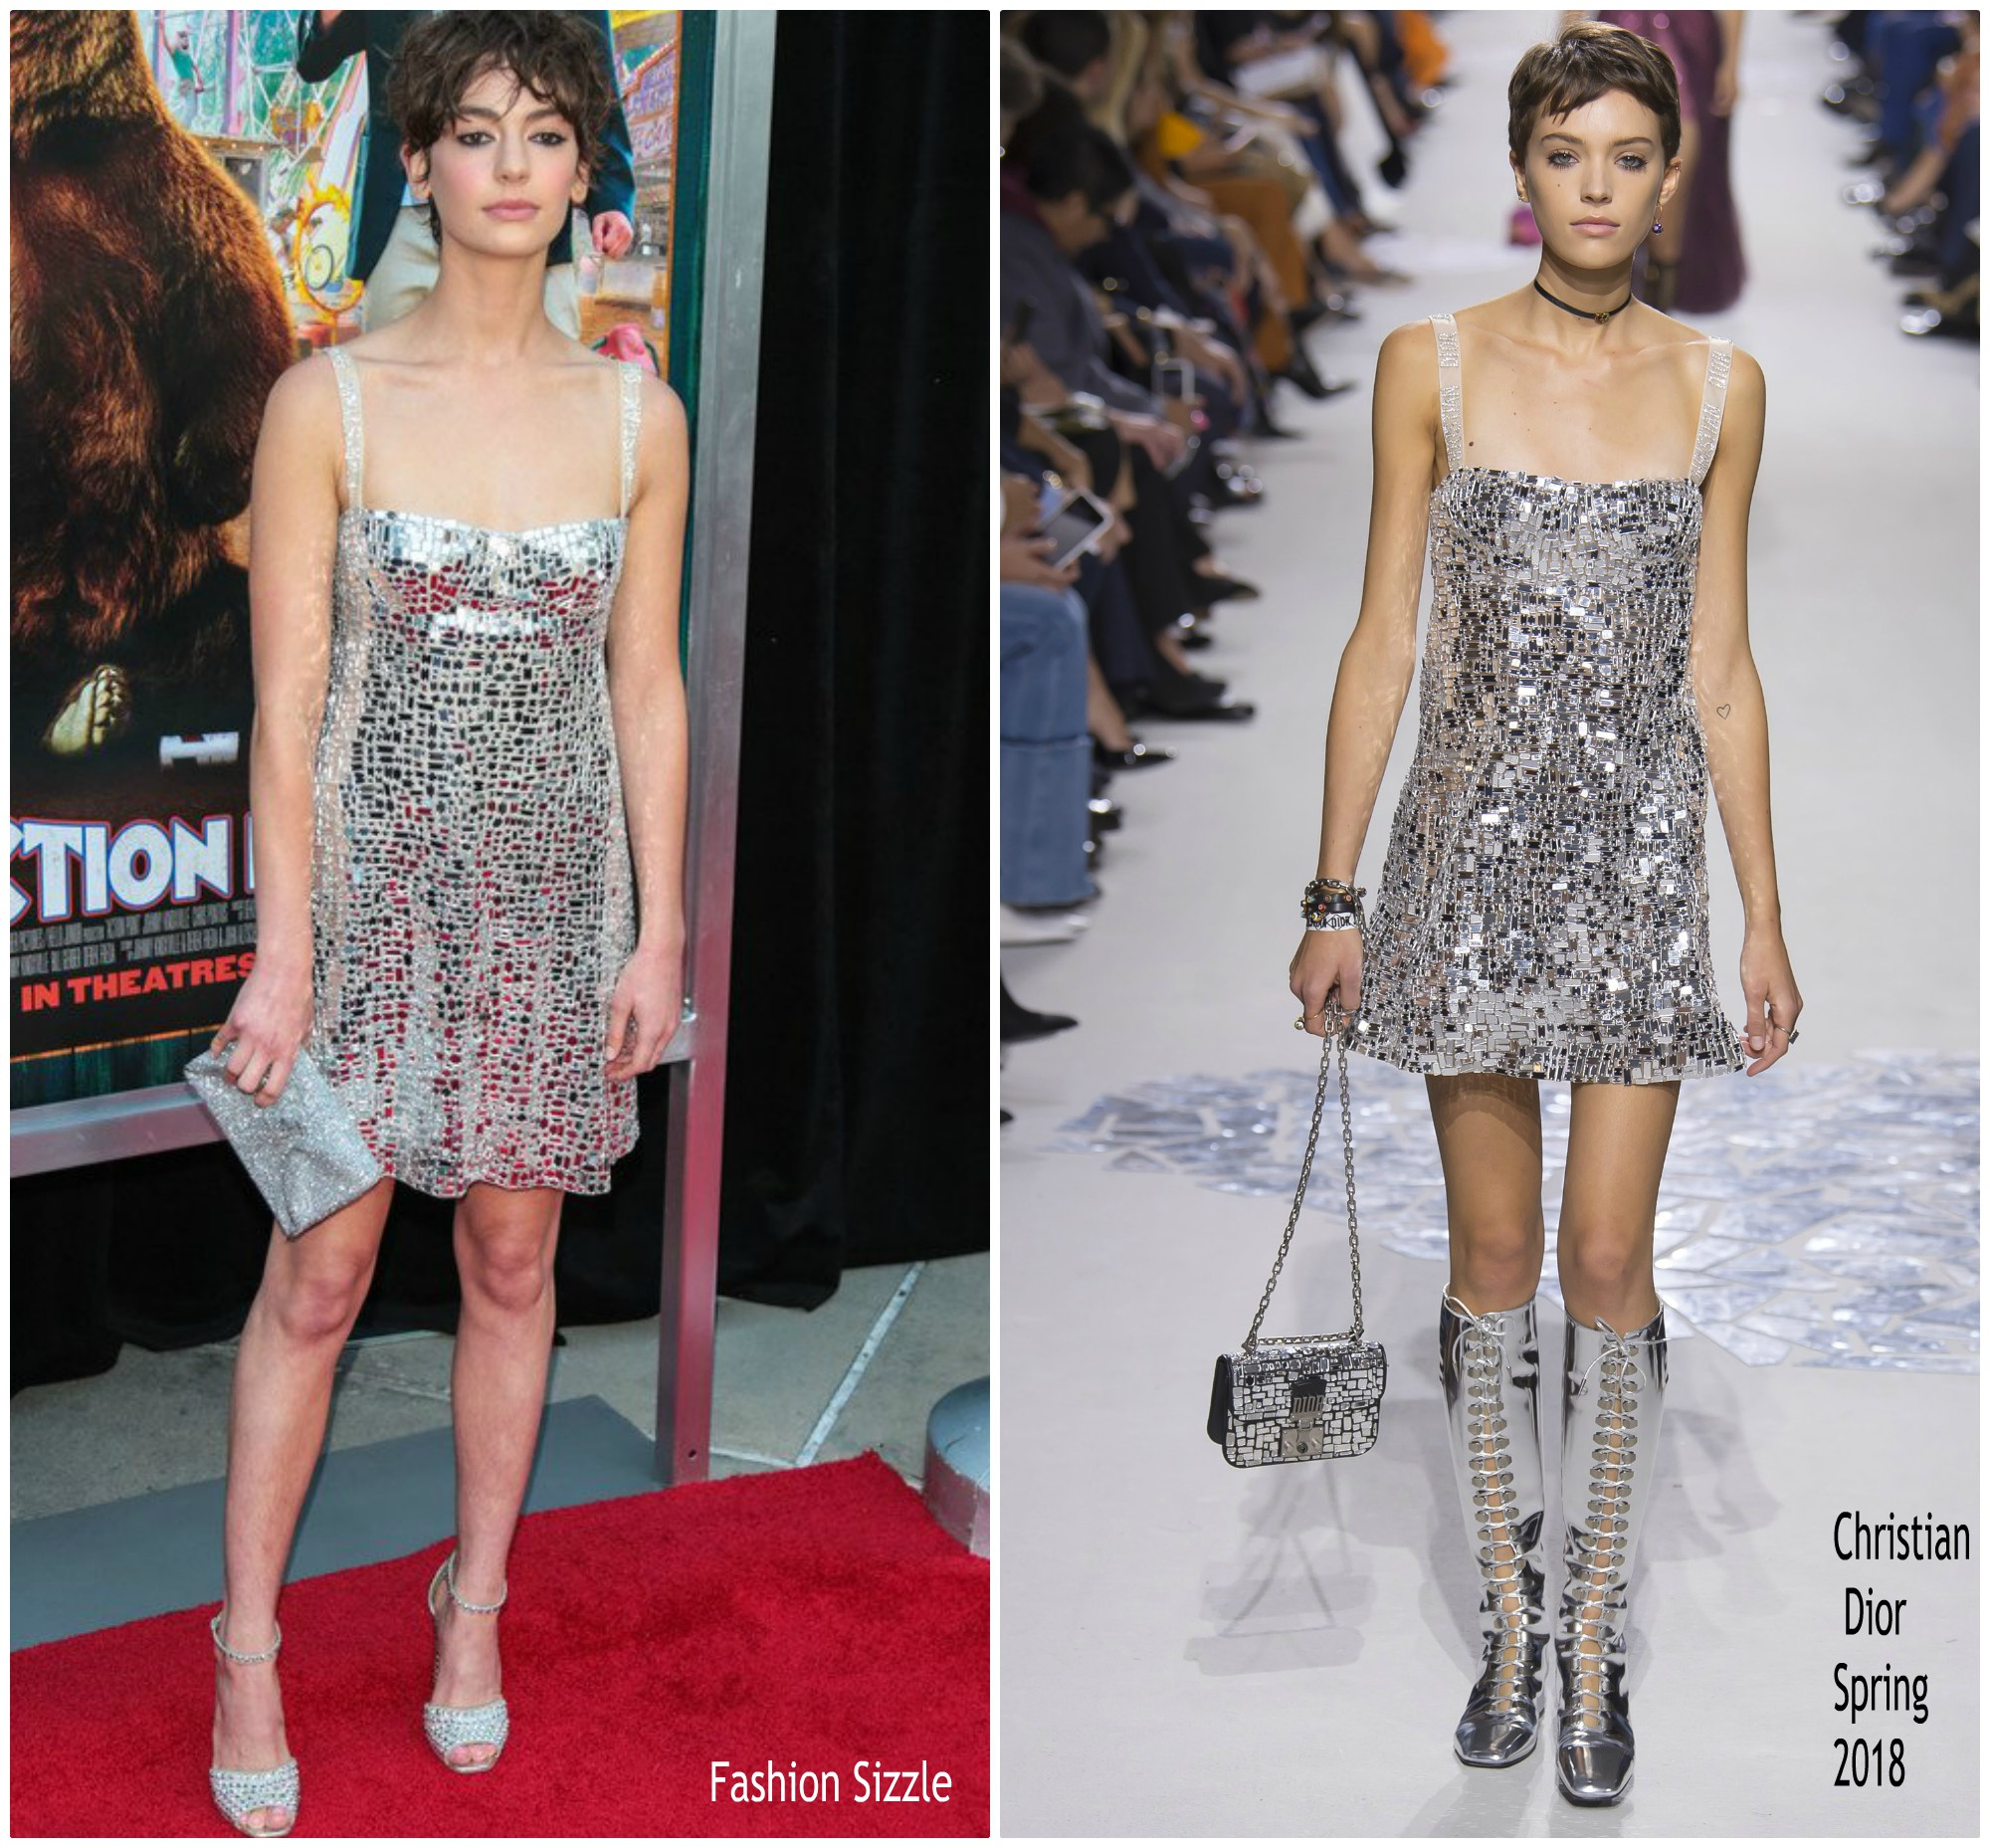 brigette-lundy-paine-in-christian-dior-action-point-la-premiere